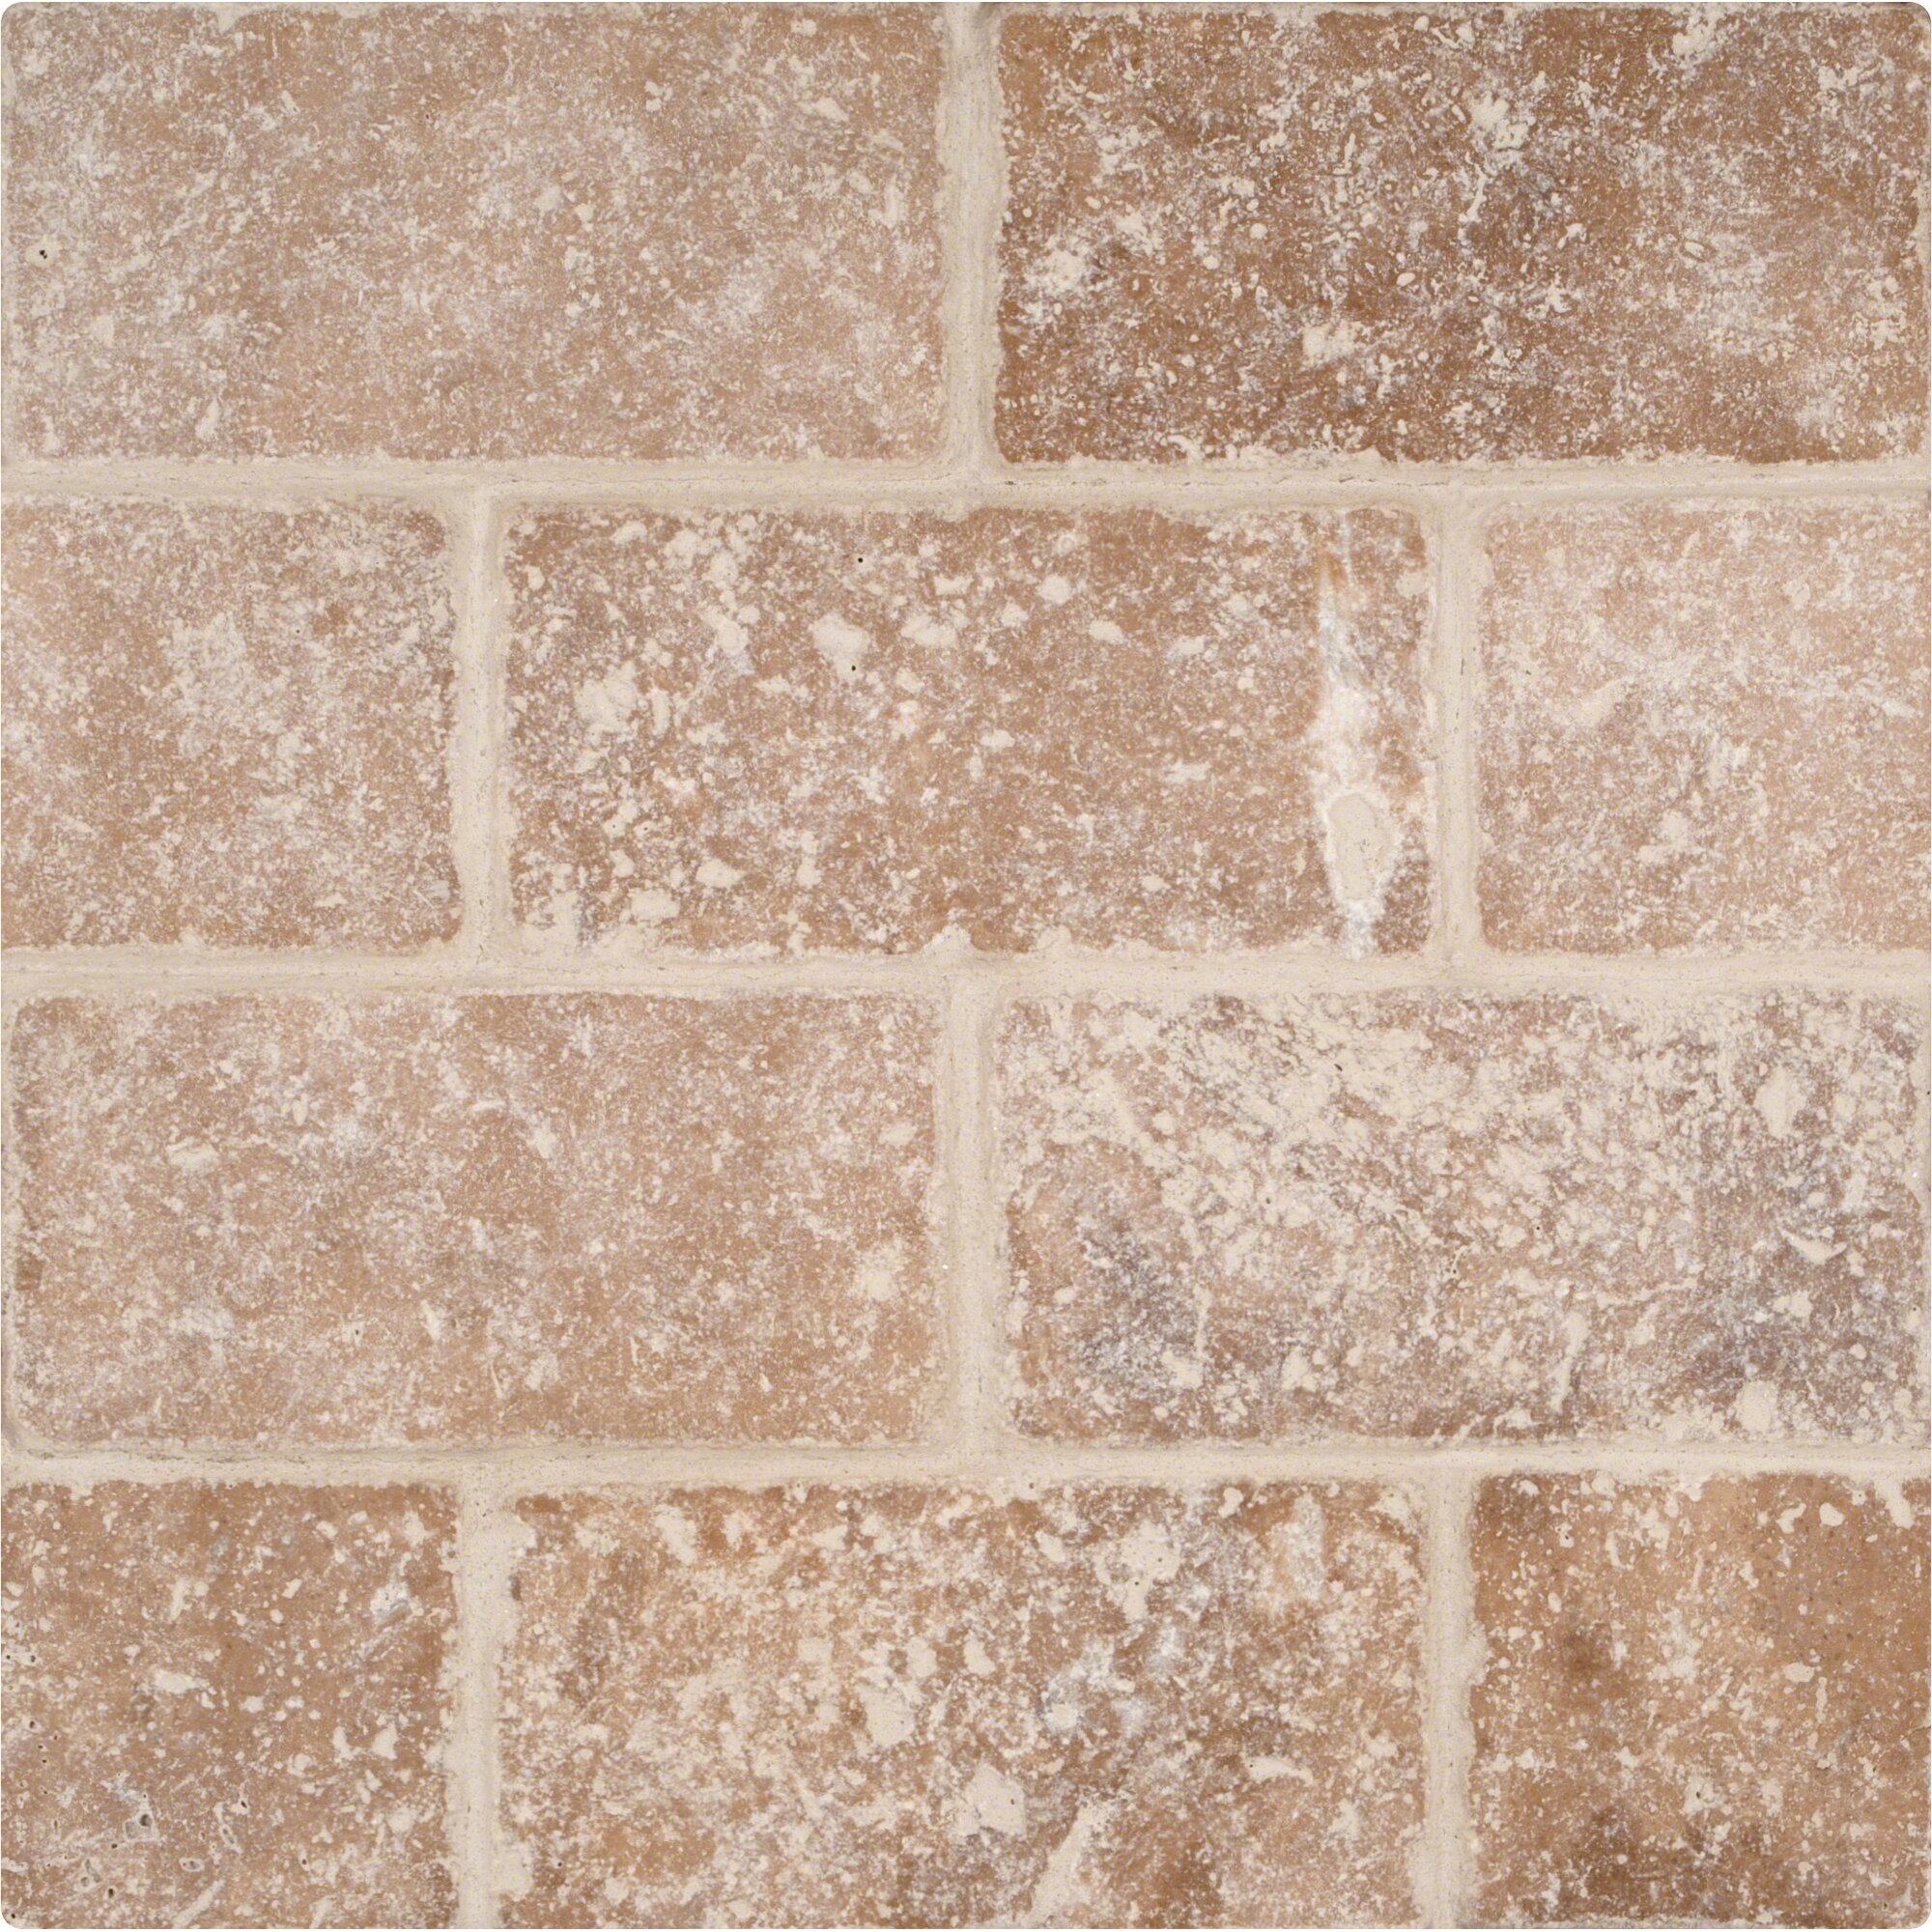 Msi tuscany walnut 3 x 6 39 39 travertine subway tile in for Tumbled glass tile